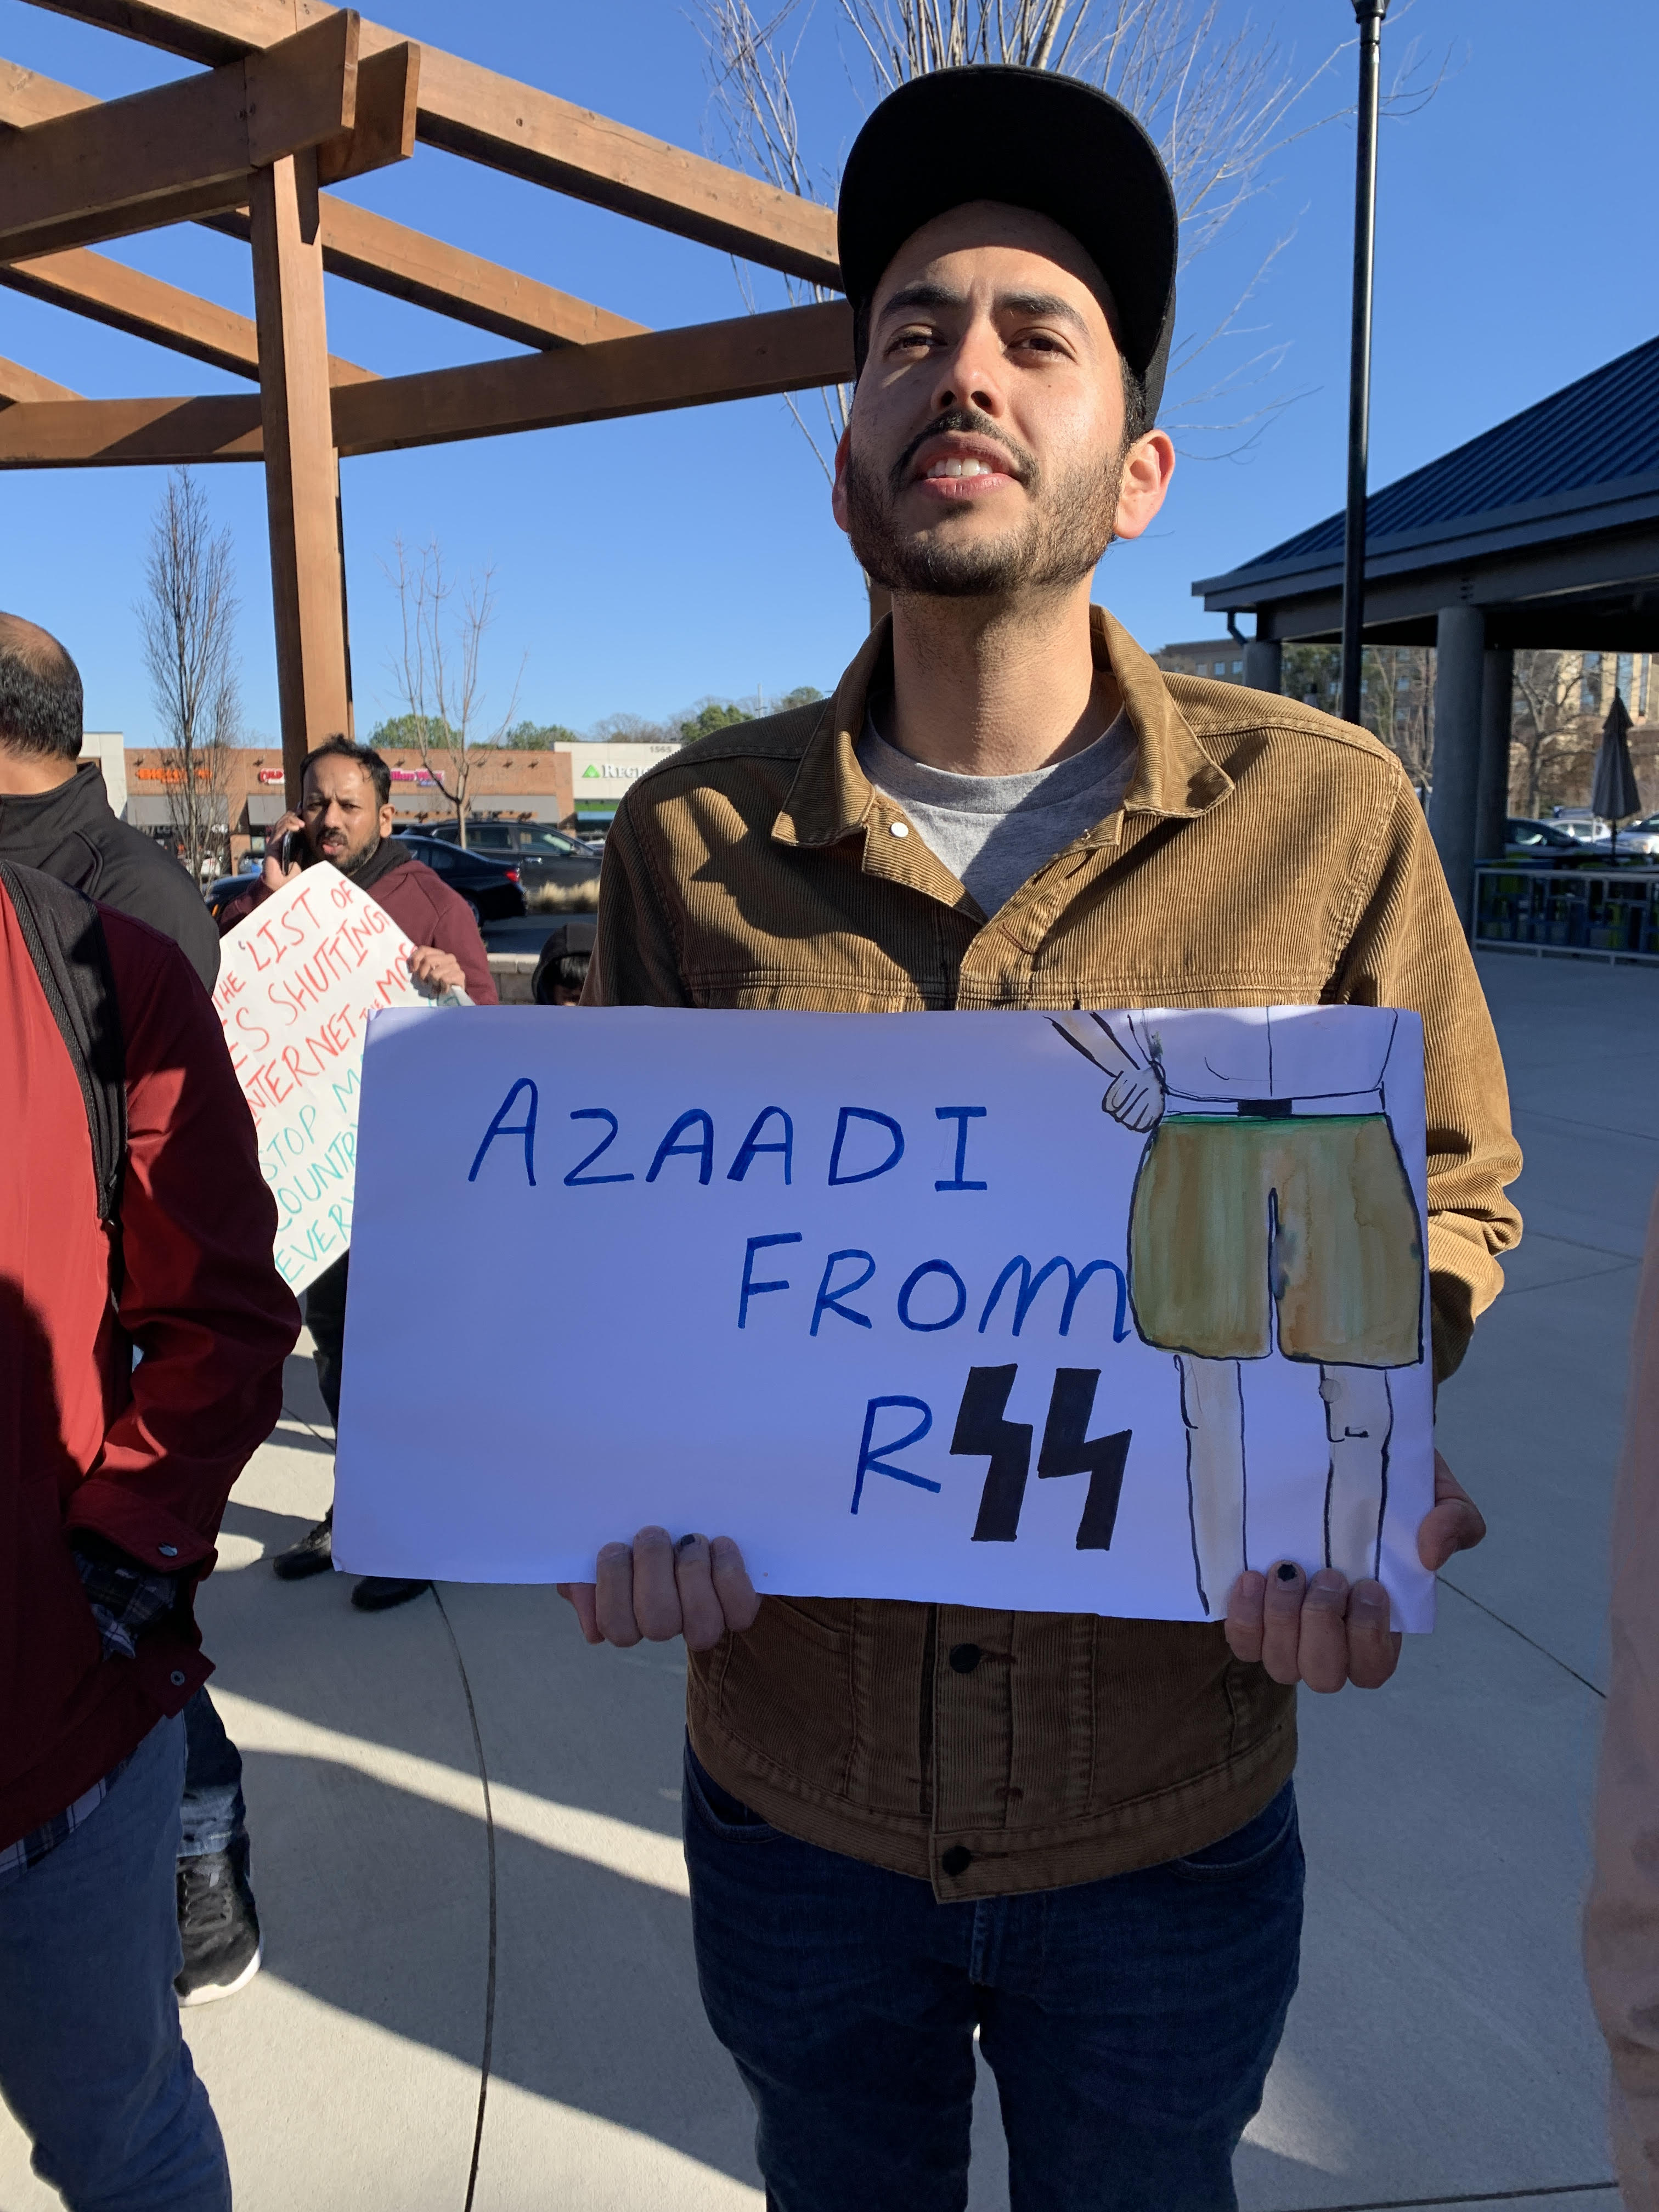 """Azaadi from RSS"" from protests in Atlanta (Shelly Anand)"